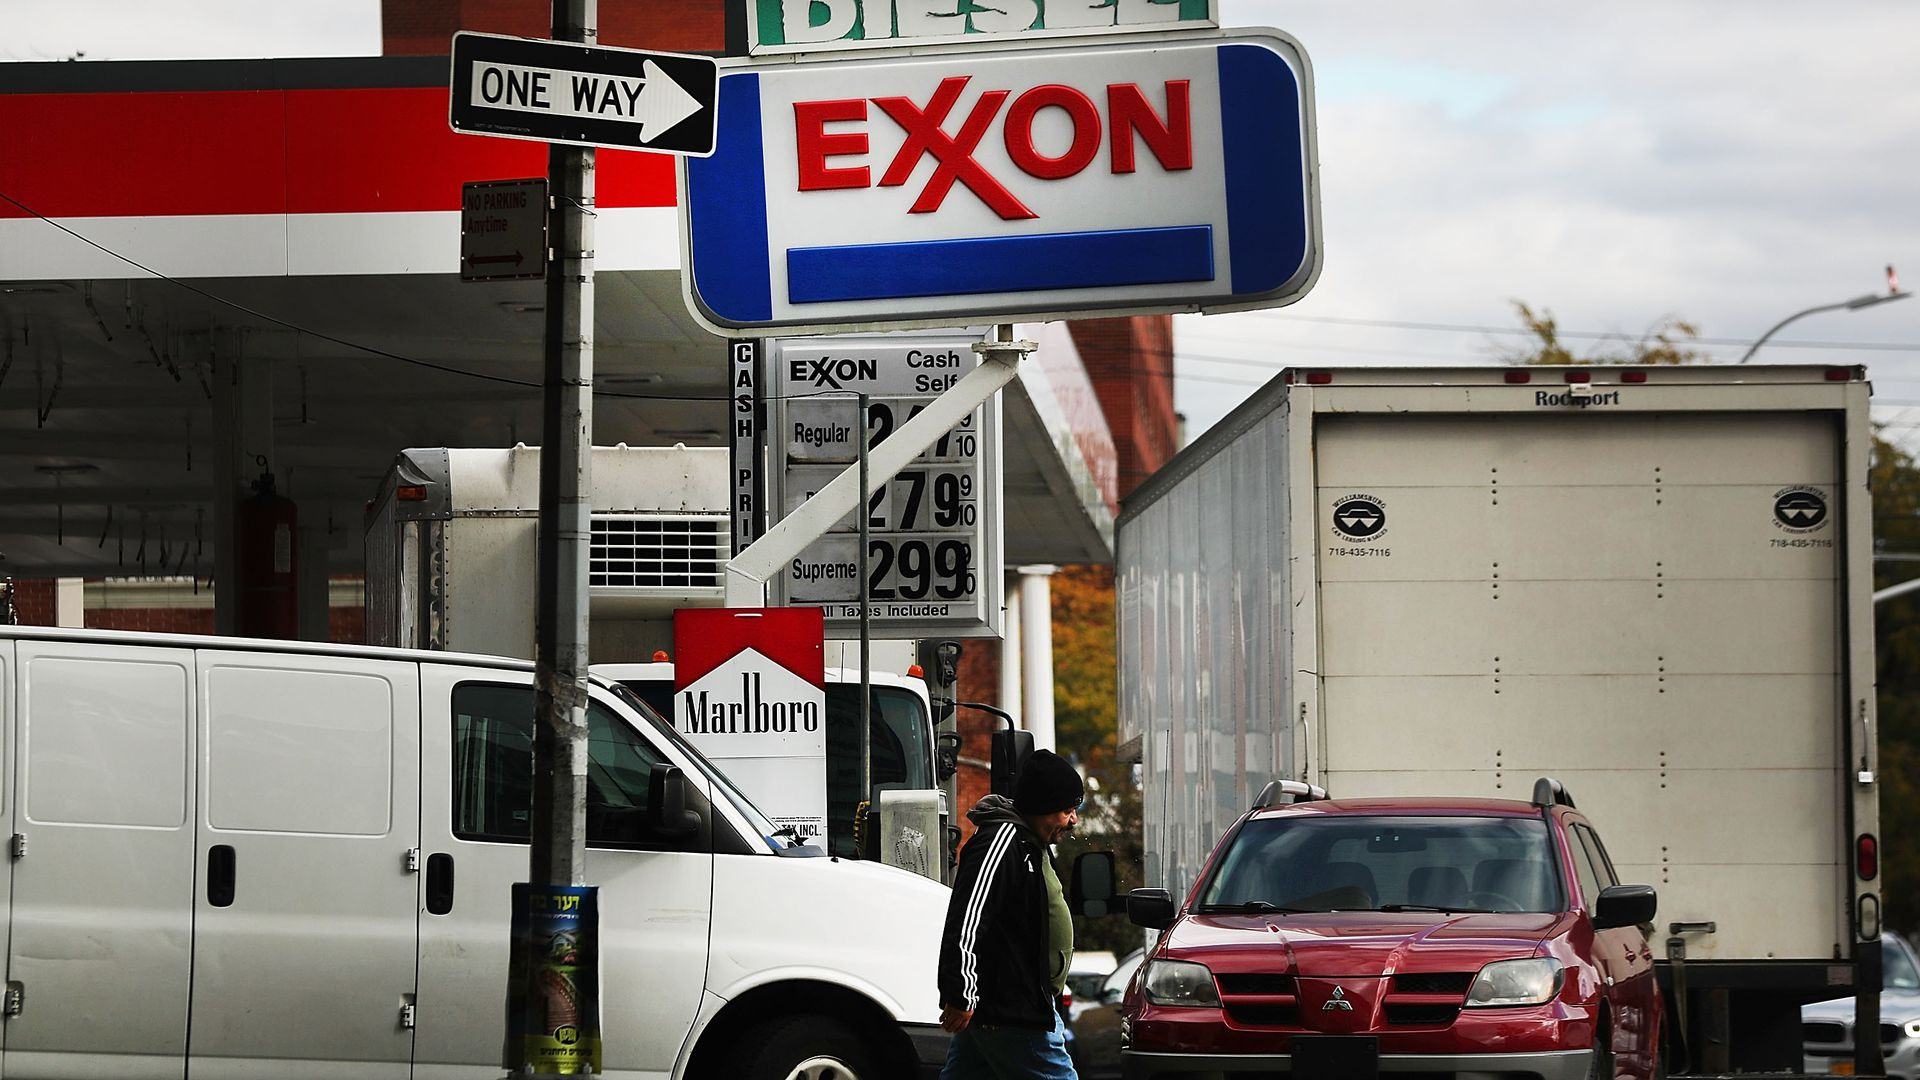 In this image, a man walks underneath an Exxon sign at a gas station.